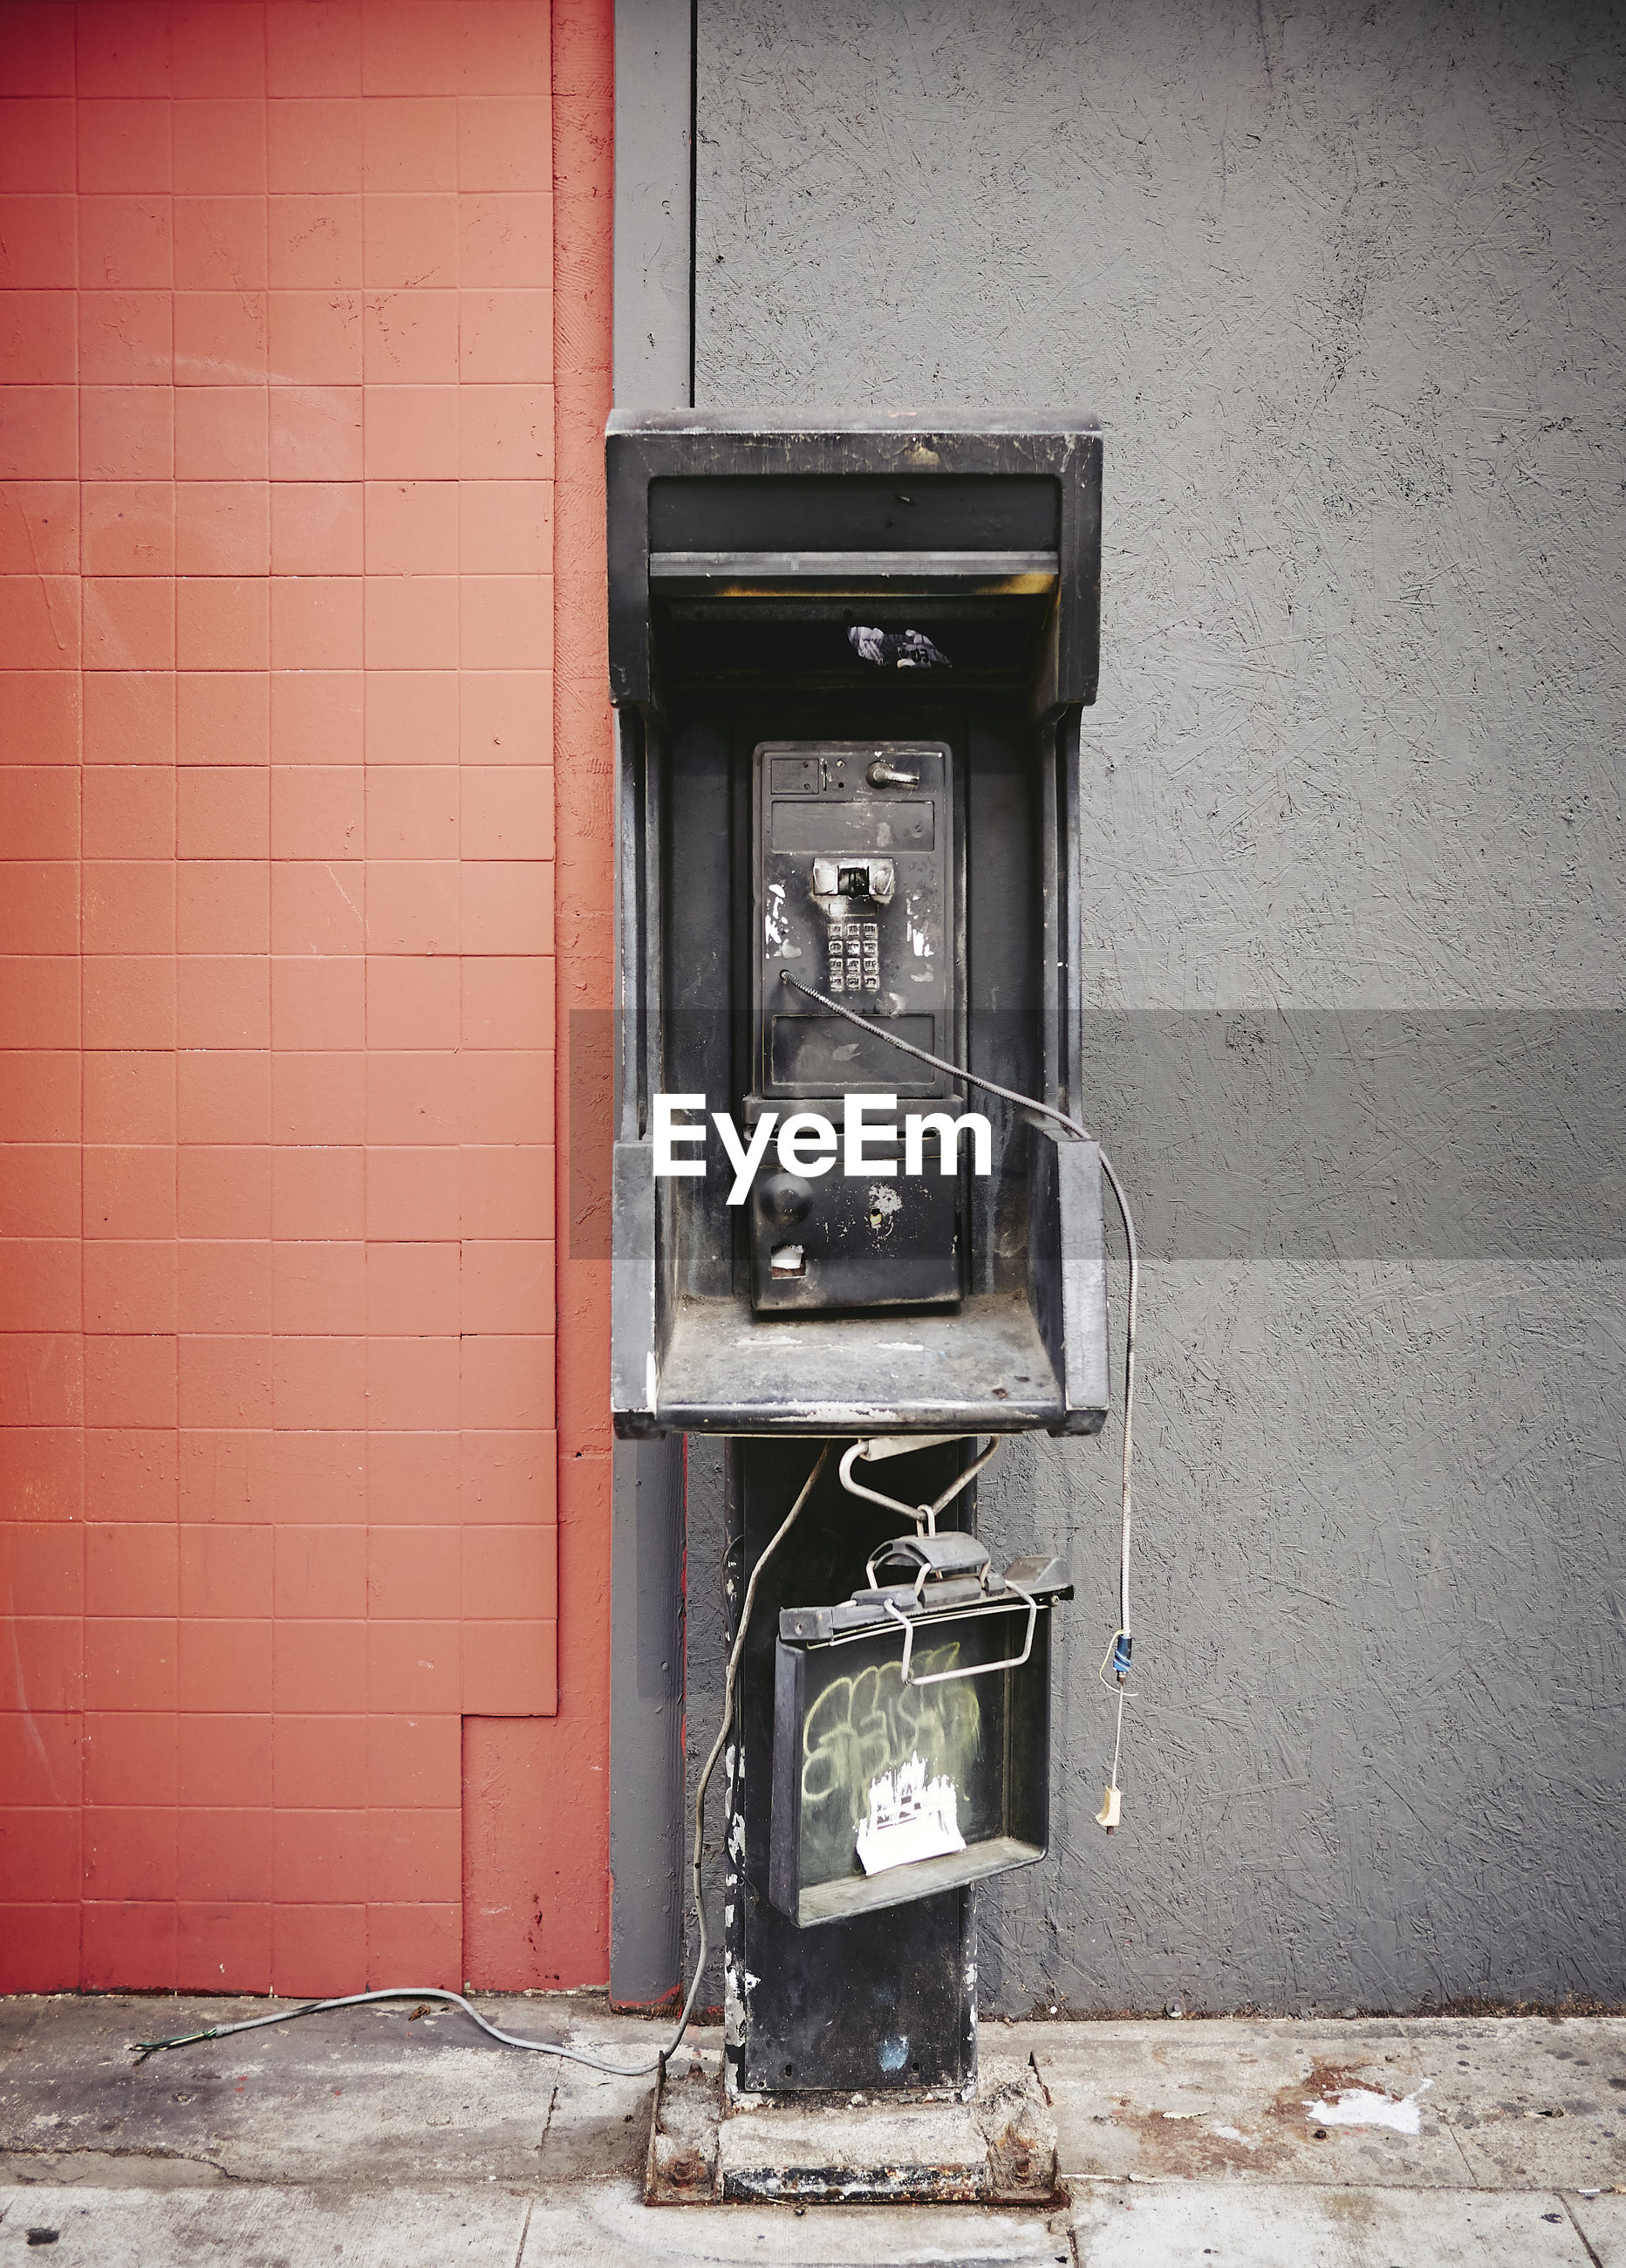 Abandoned telephone booth against wall